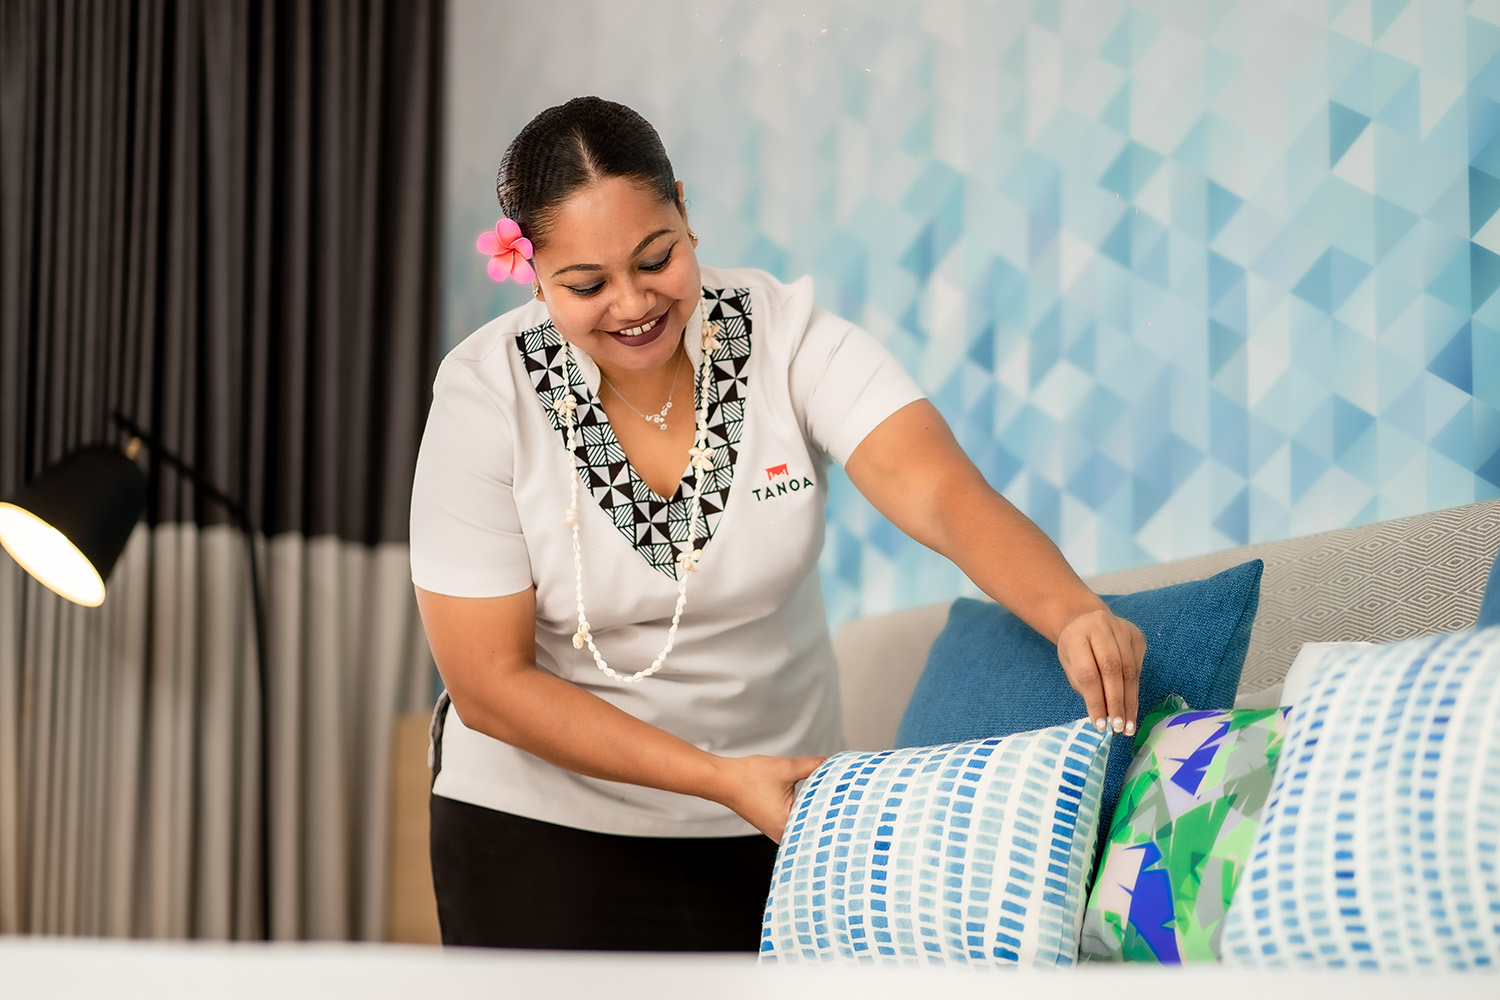 tanoaplaza_corporate_shoot_staff-fluffing-pillows3-web